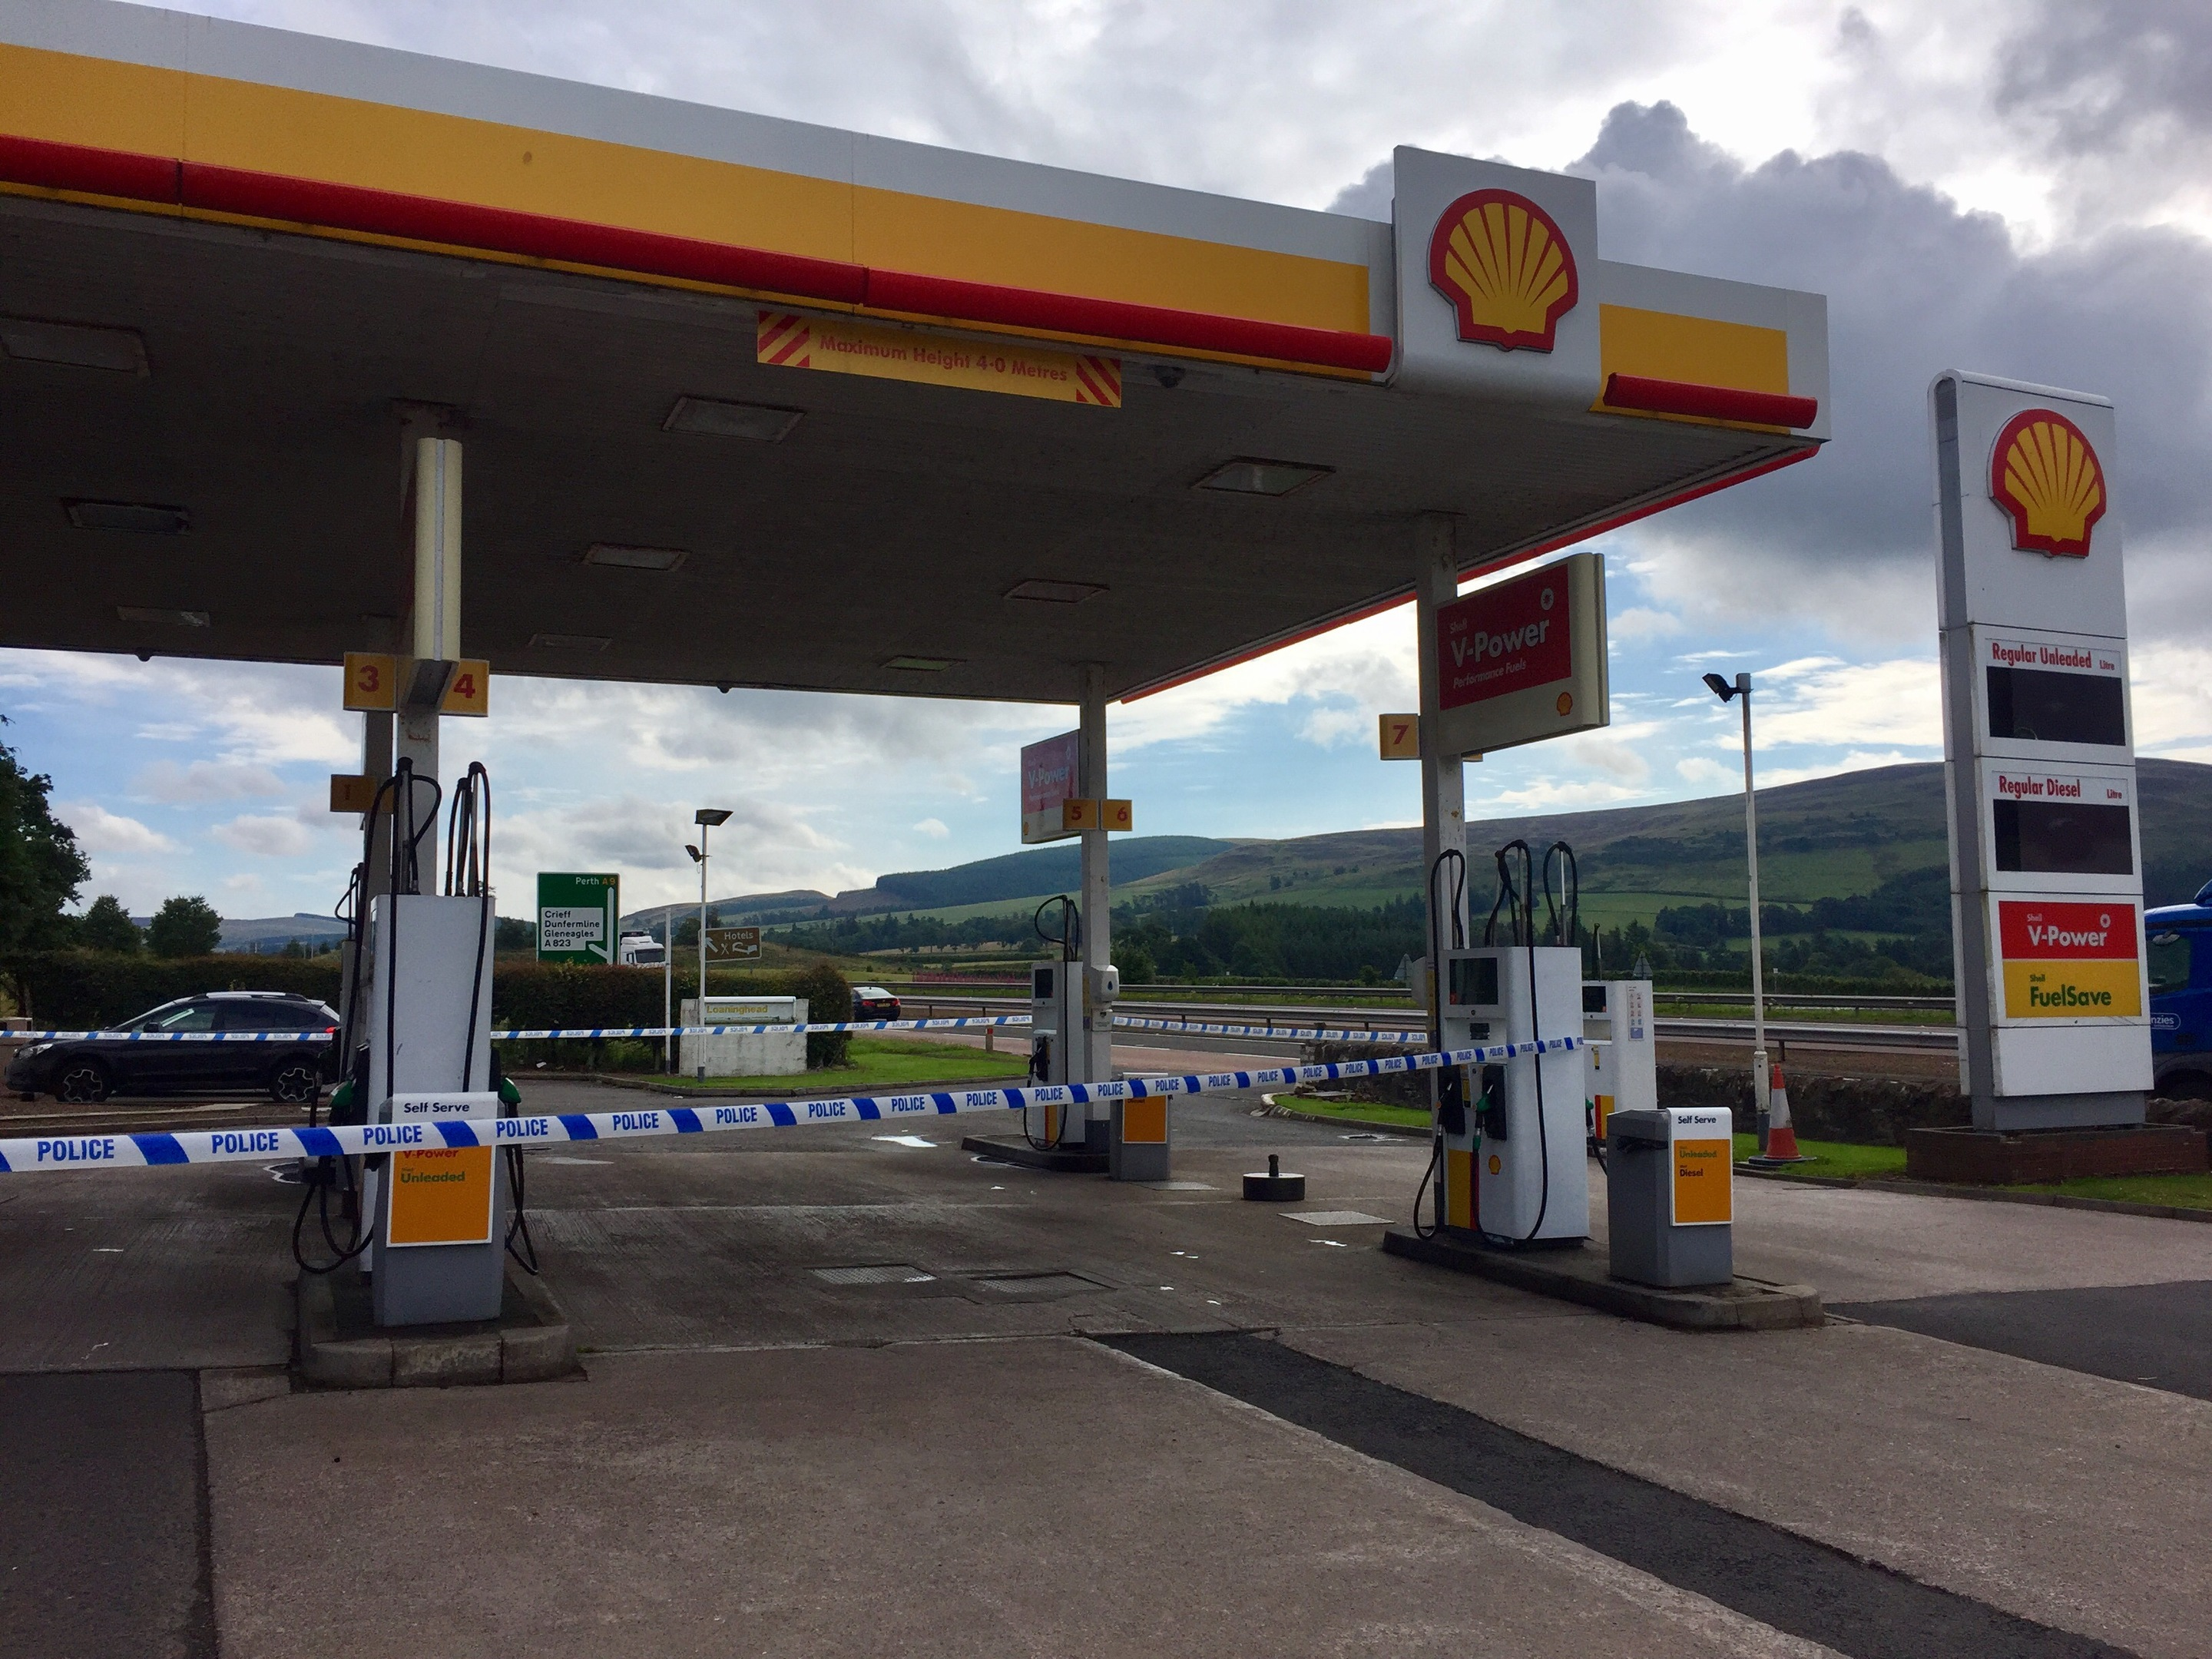 Loaninghead petrol station was broken into on Tuesday night.